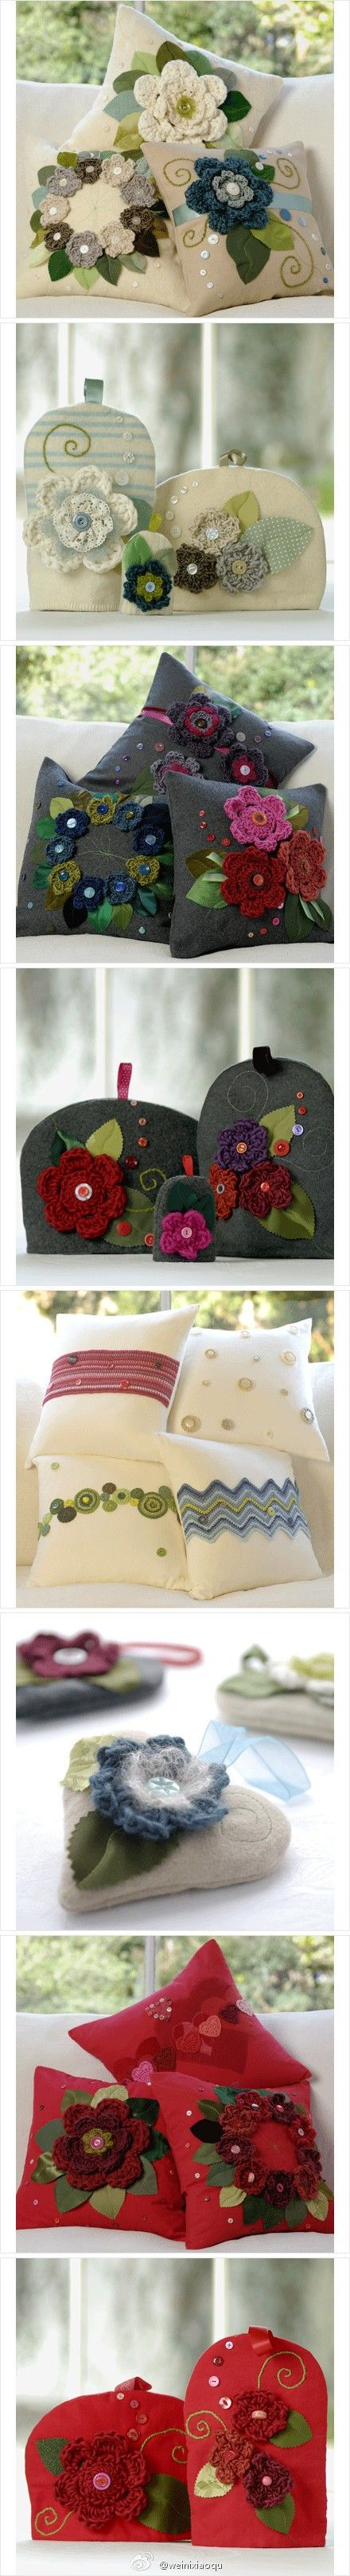 crochet flowers pillow